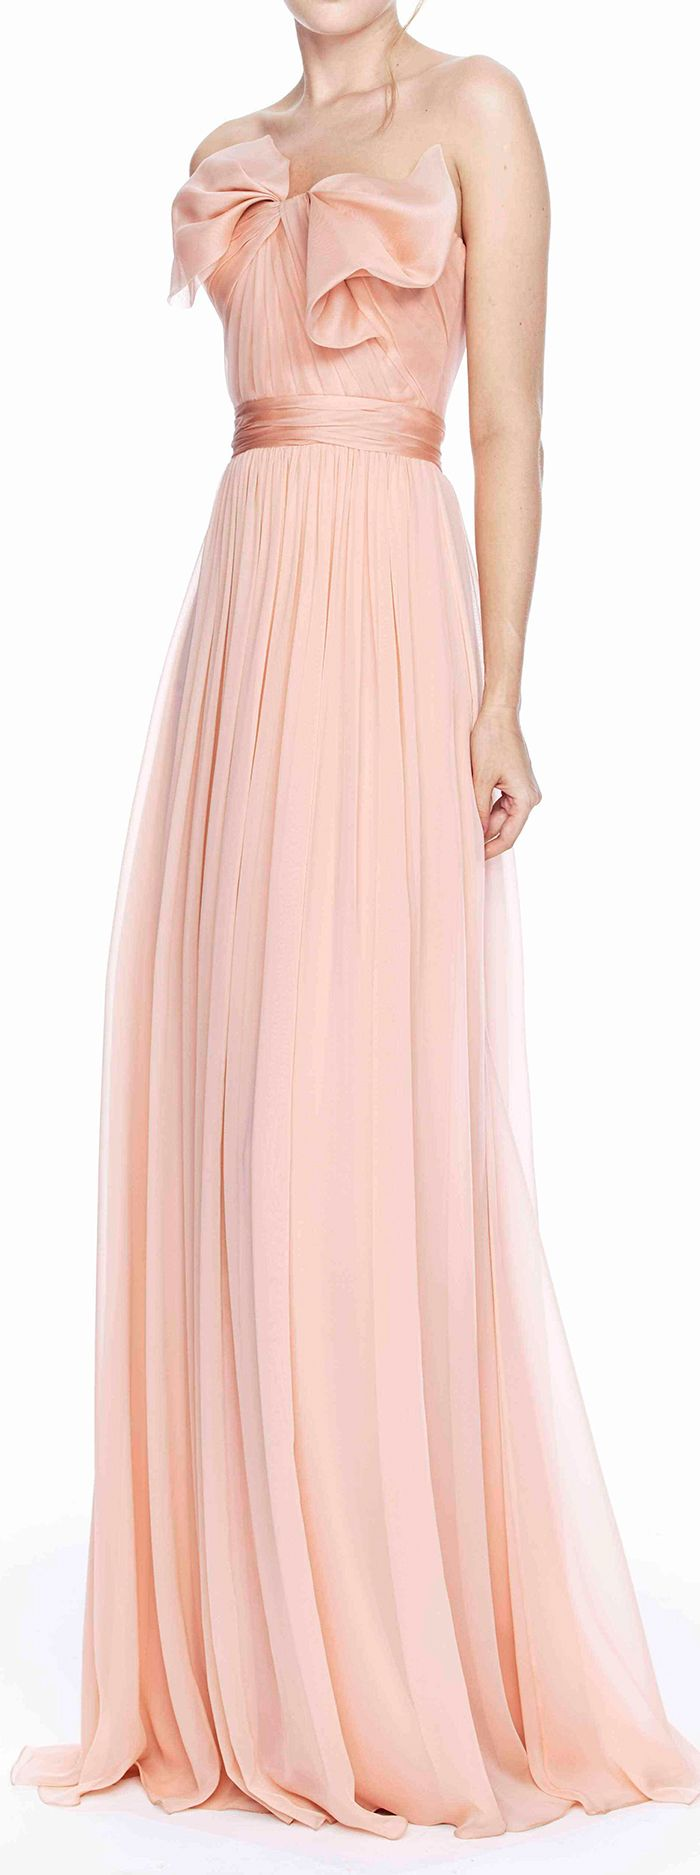 Marchesa Silk Blush Gown | Going to the Ball | Pinterest | Falda, Me ...